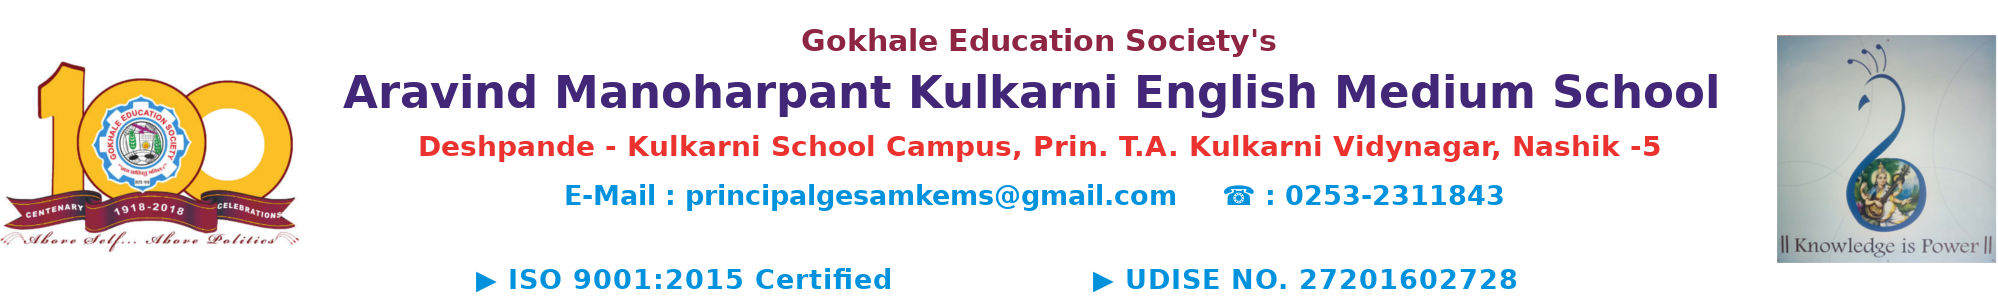 Arvind Manoharpant Kulkarni English Medium School